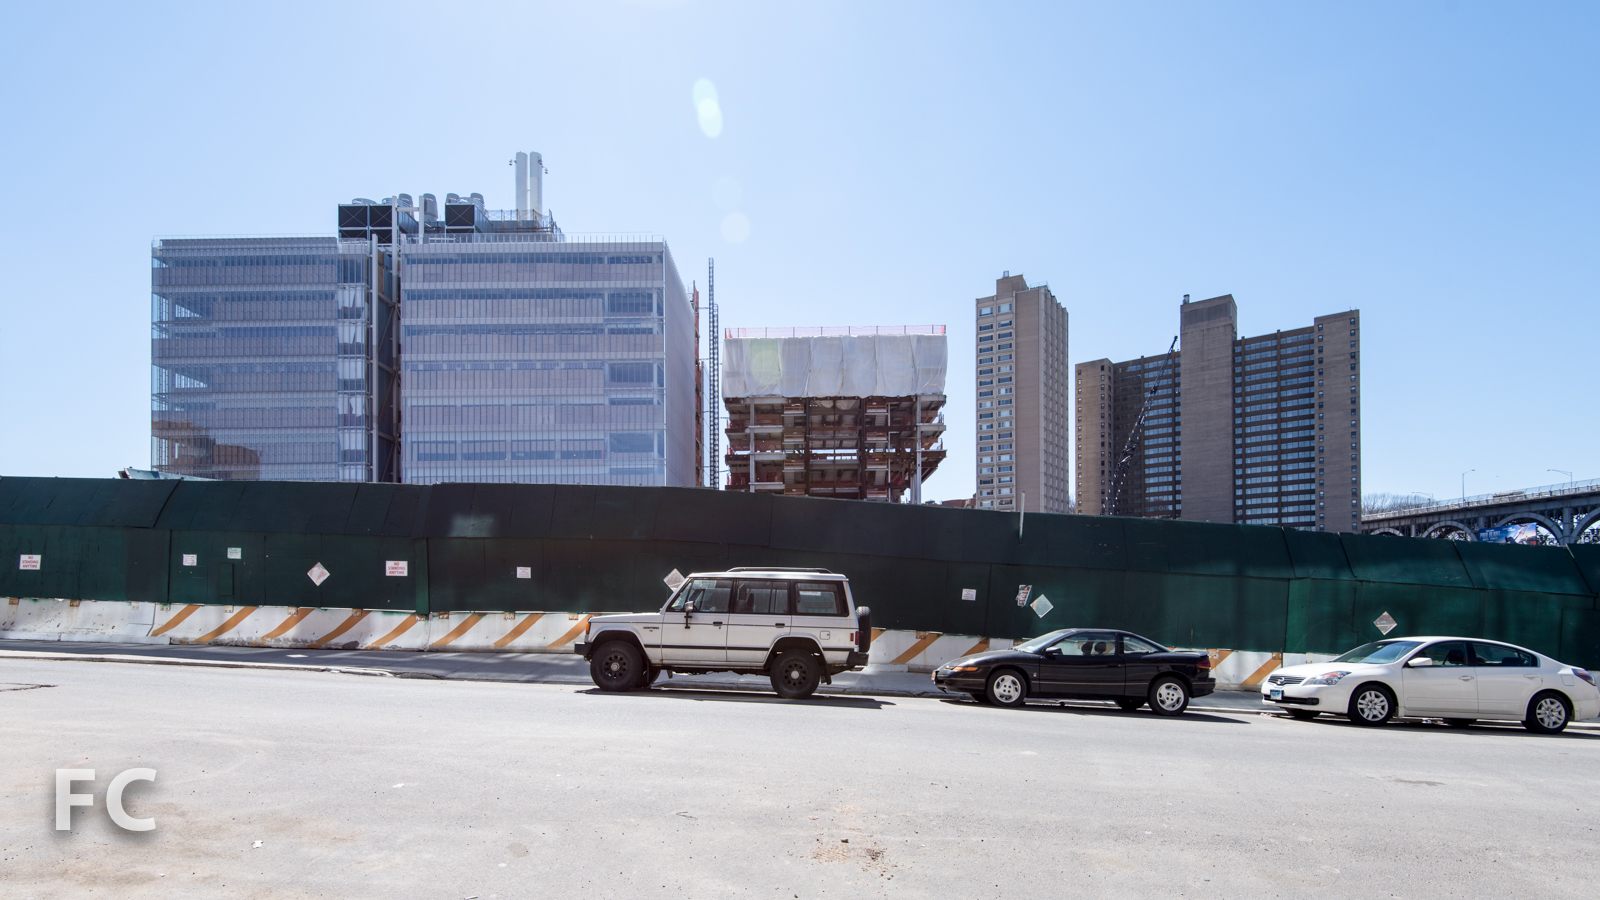 North facade of the Science Center (left) and the Center for the Arts (right) from West 131st Street.